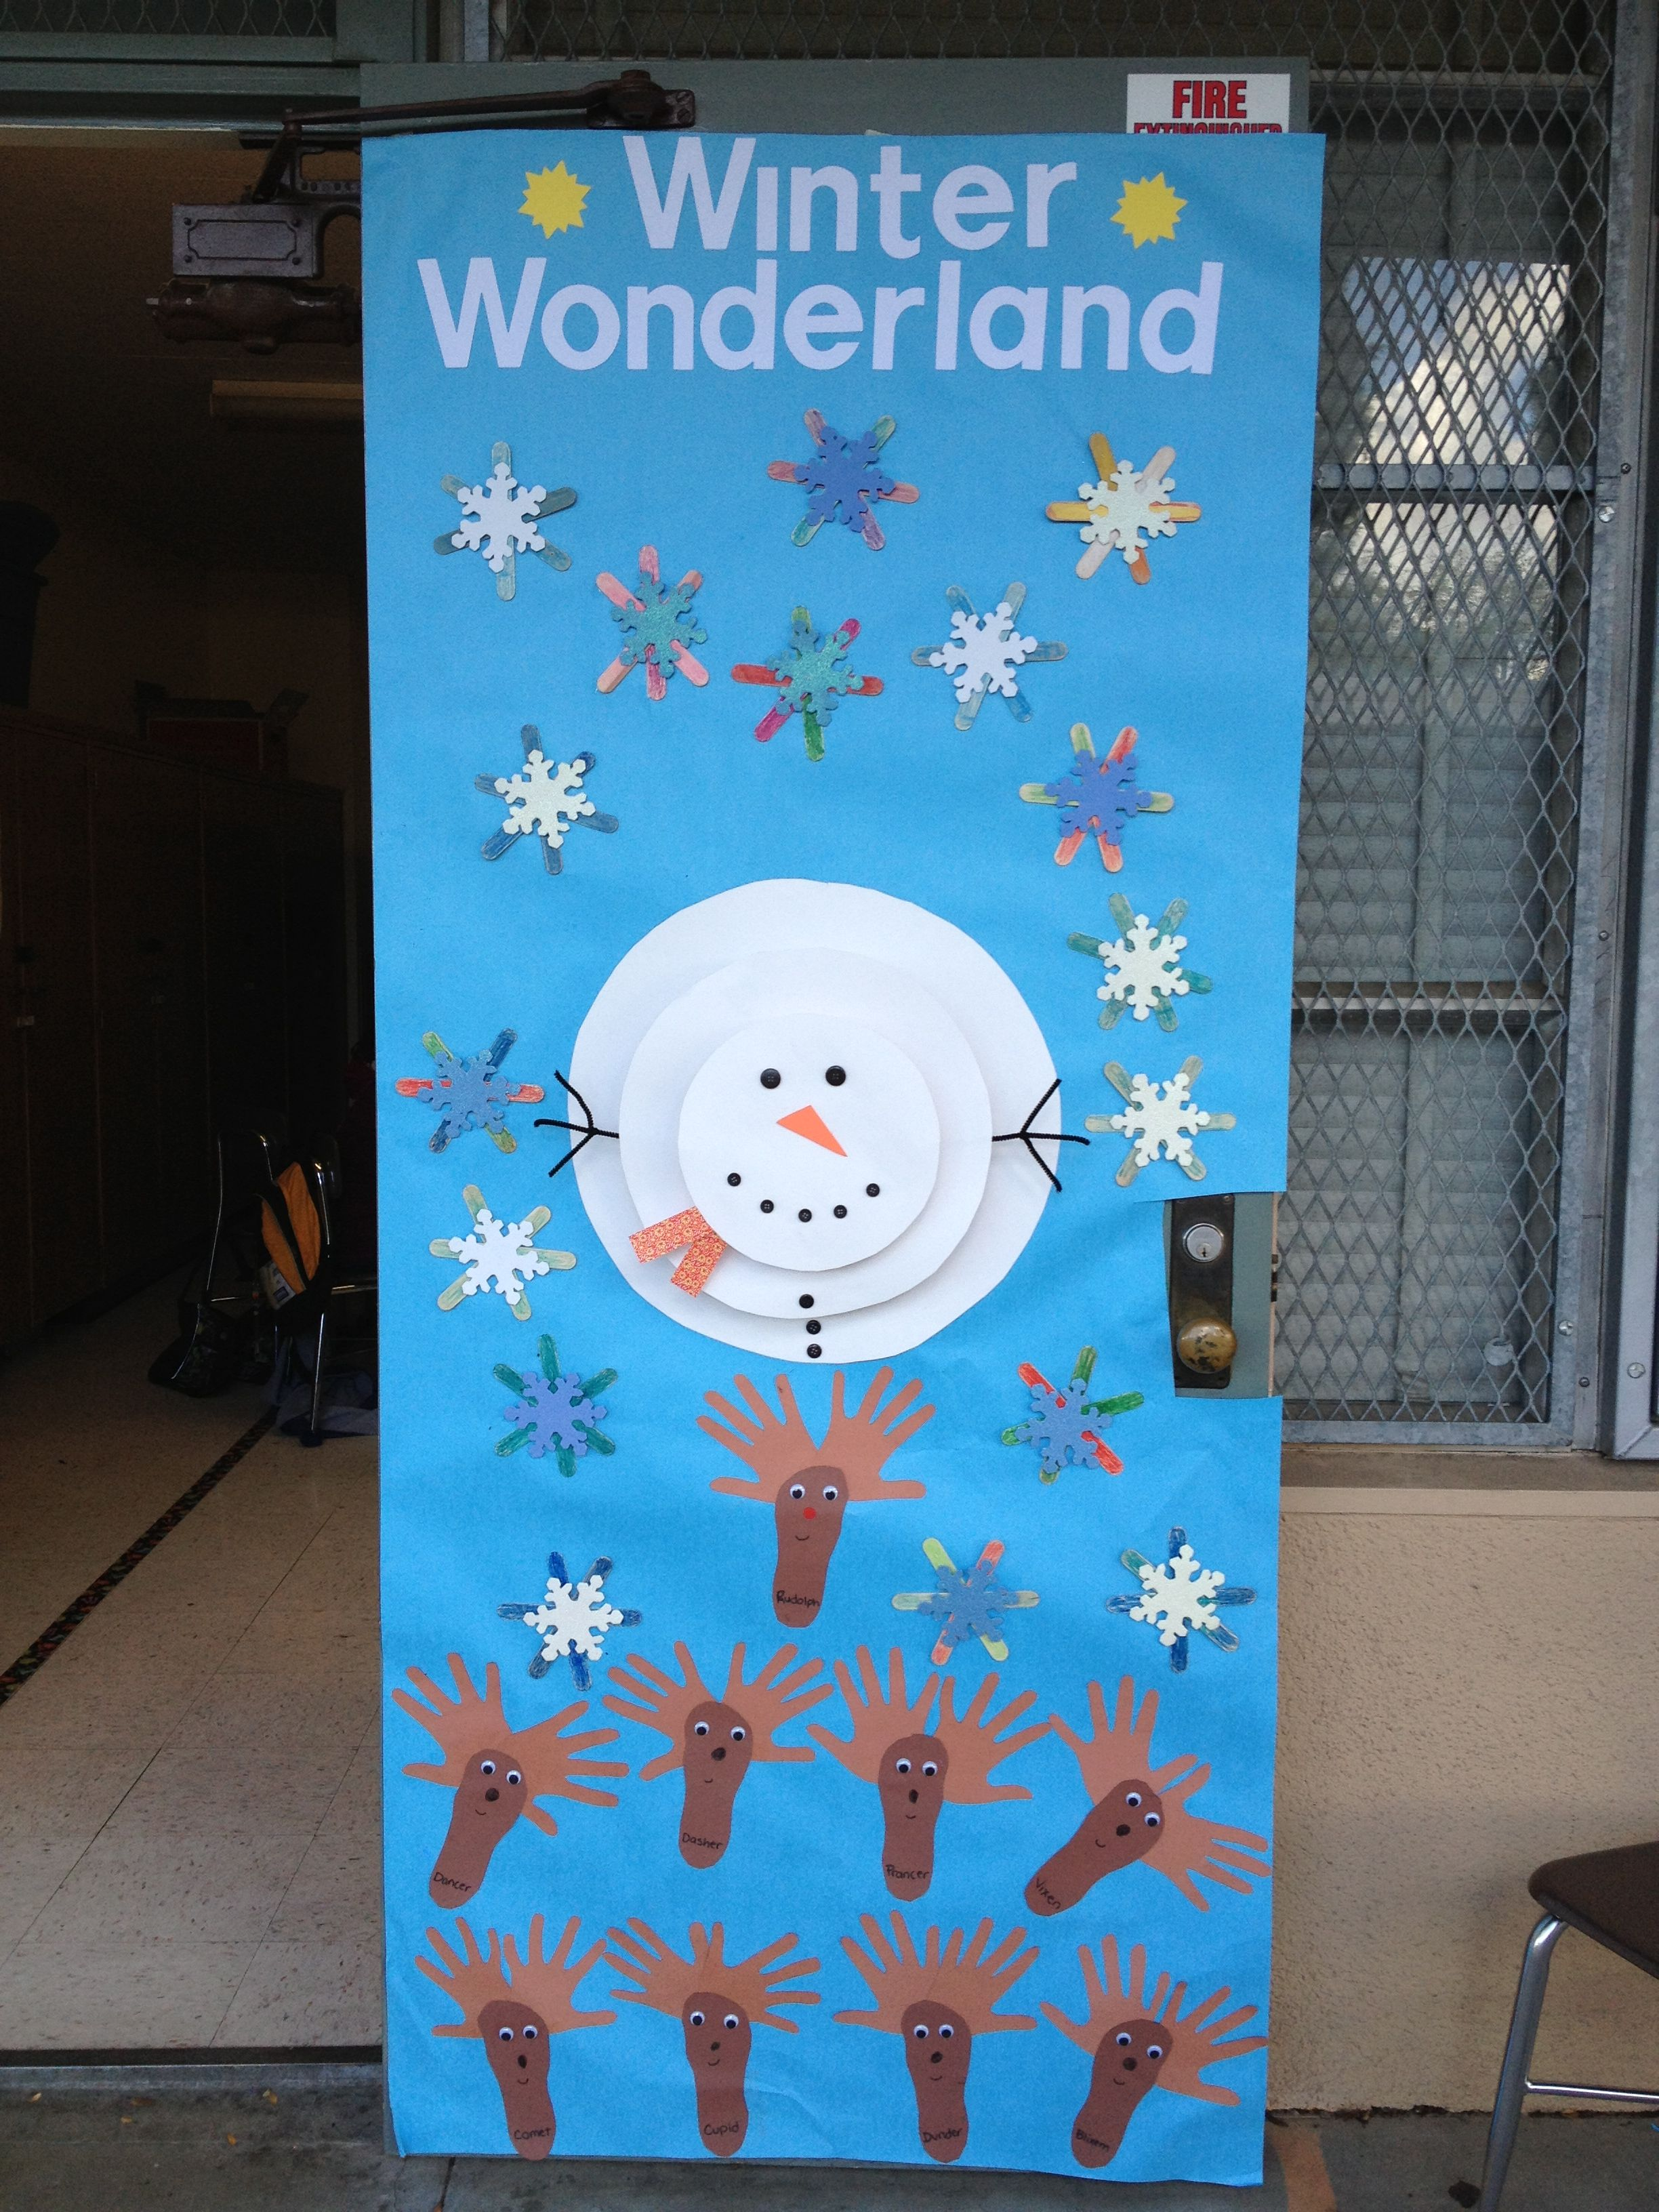 Winter wonderland door decoration